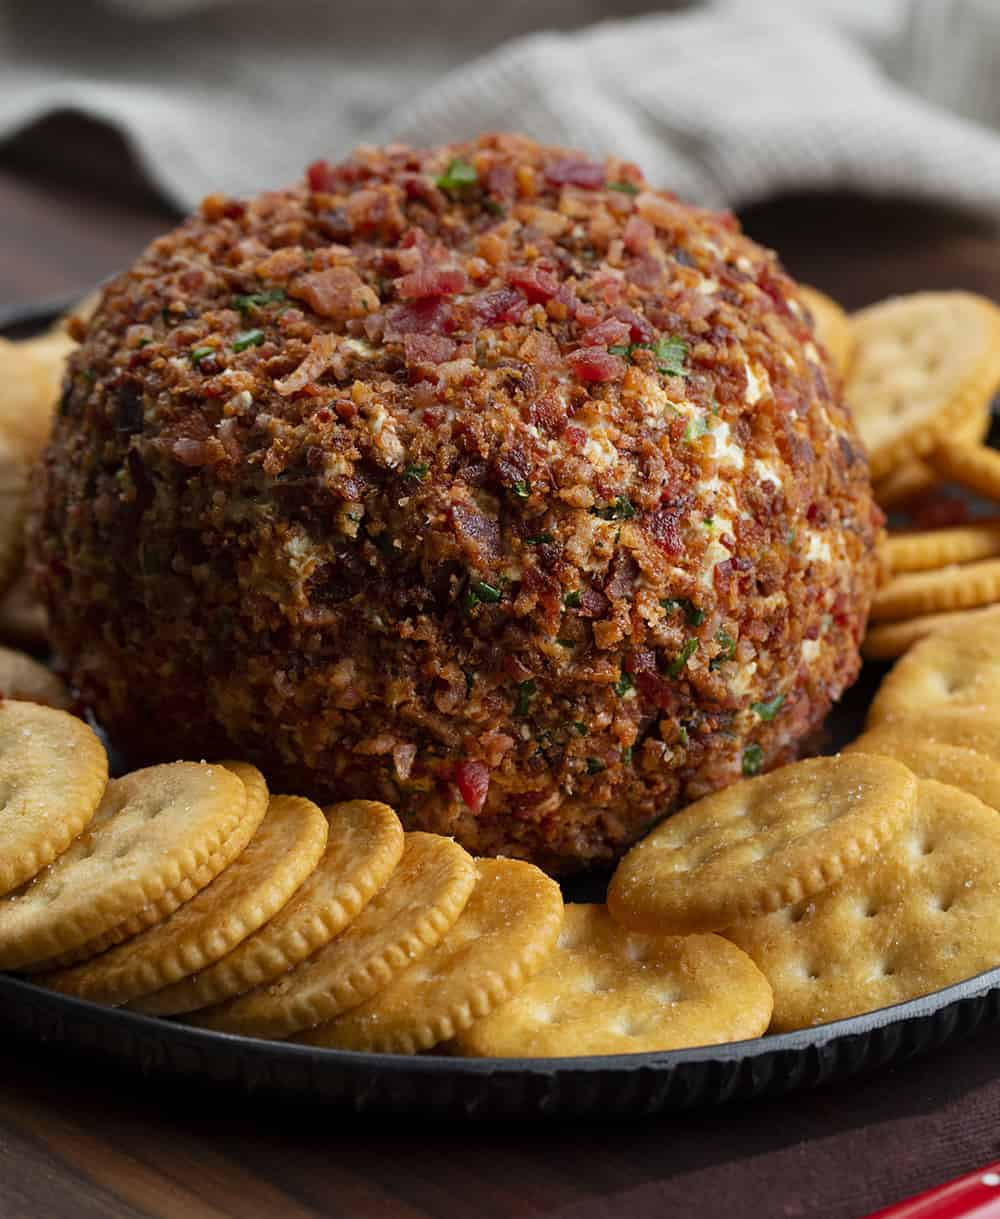 Bacon Jalapeno Ranch Cheeseball Surrounded by Crackers